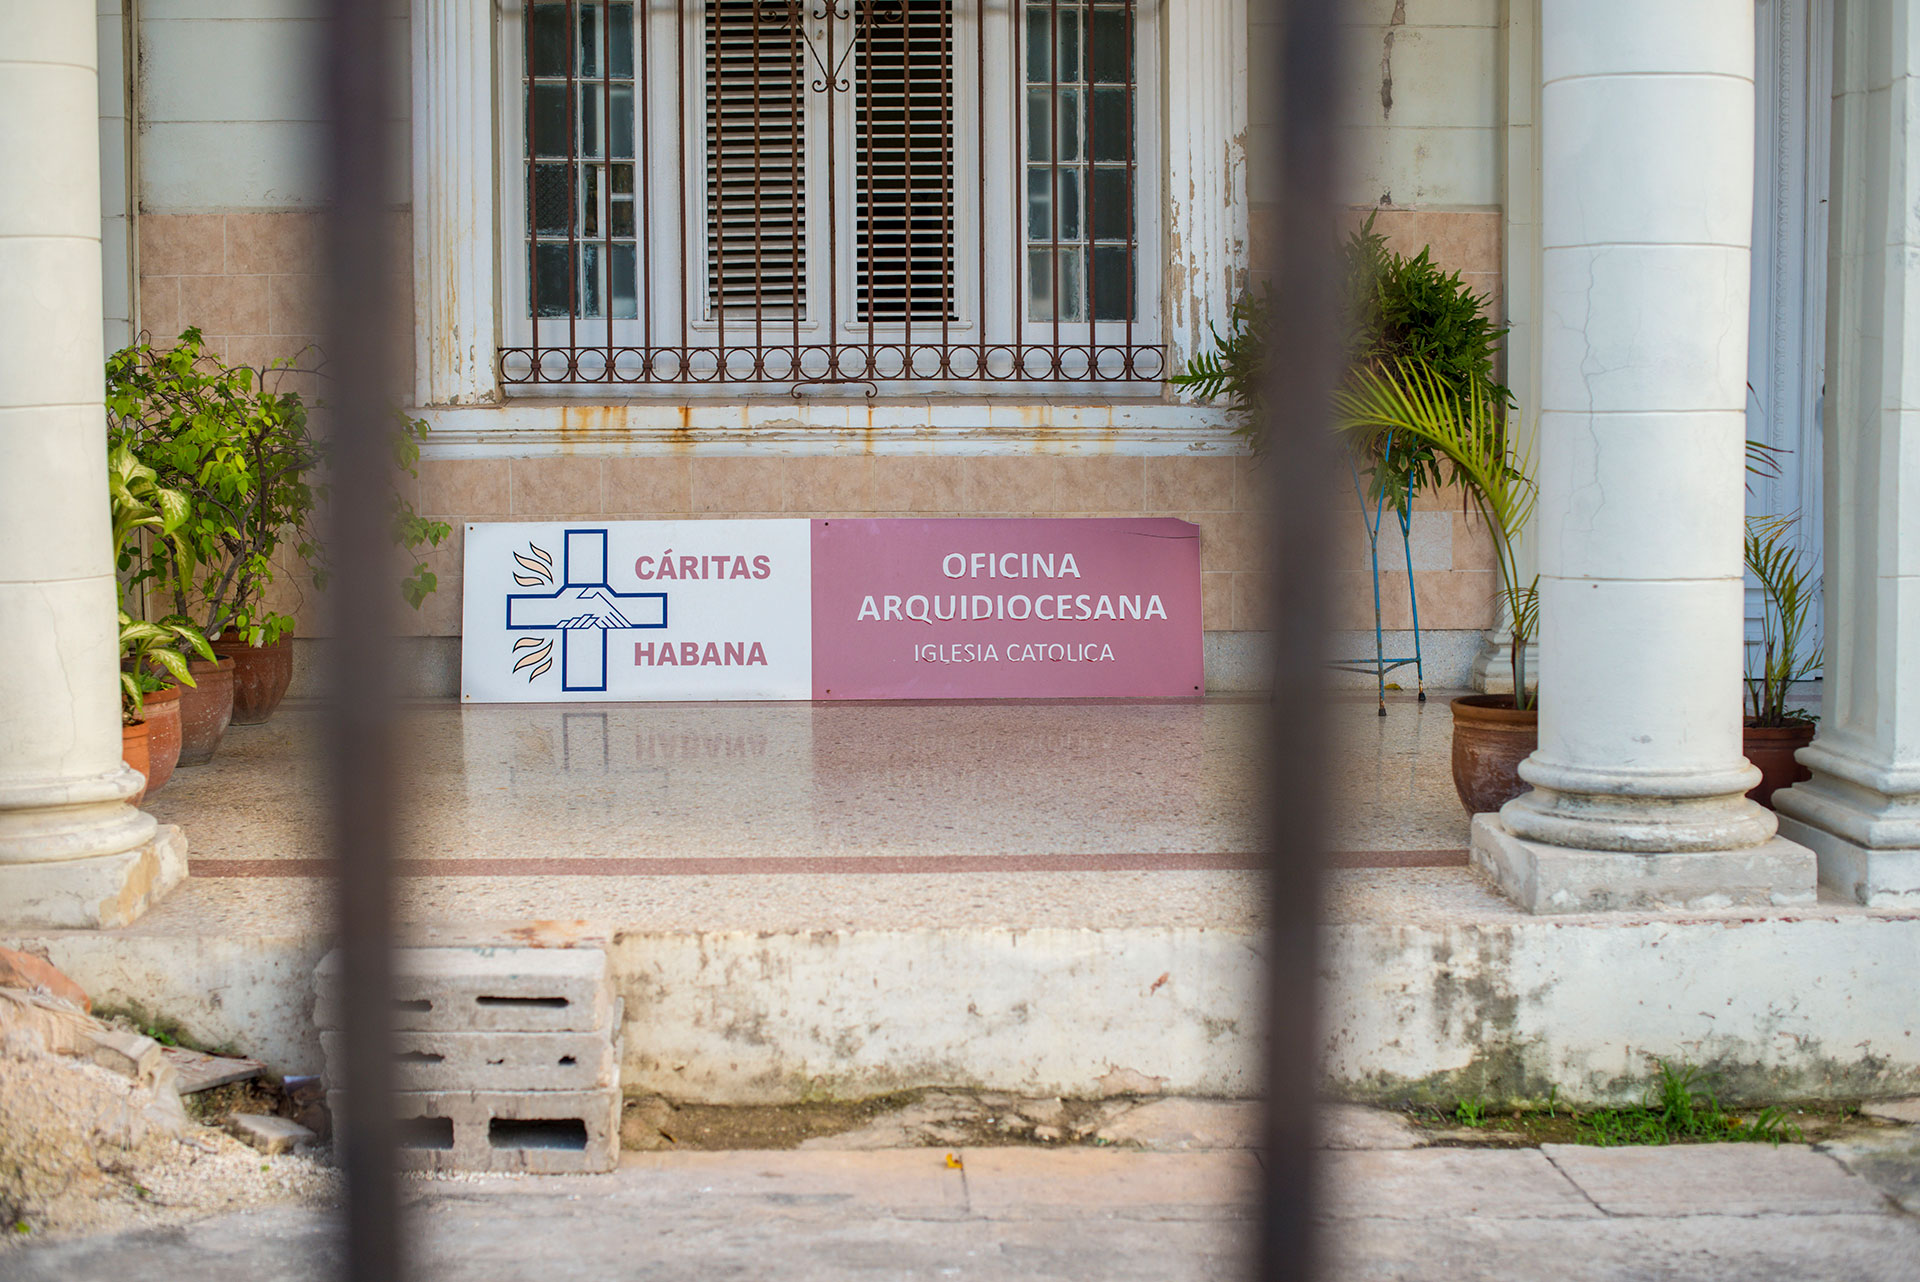 A sign at Caritas Habana is pictured March 7, 2019, in the Vedado neighborhood of Havana, Cuba. Volunteers in Boston, Massachusetts, provide a significant amount of funding to its parent organization, Caritas Cubana, which provides community-based programs and aid throughout the country. (Photo by Estelle De Zan/GroundTruth)